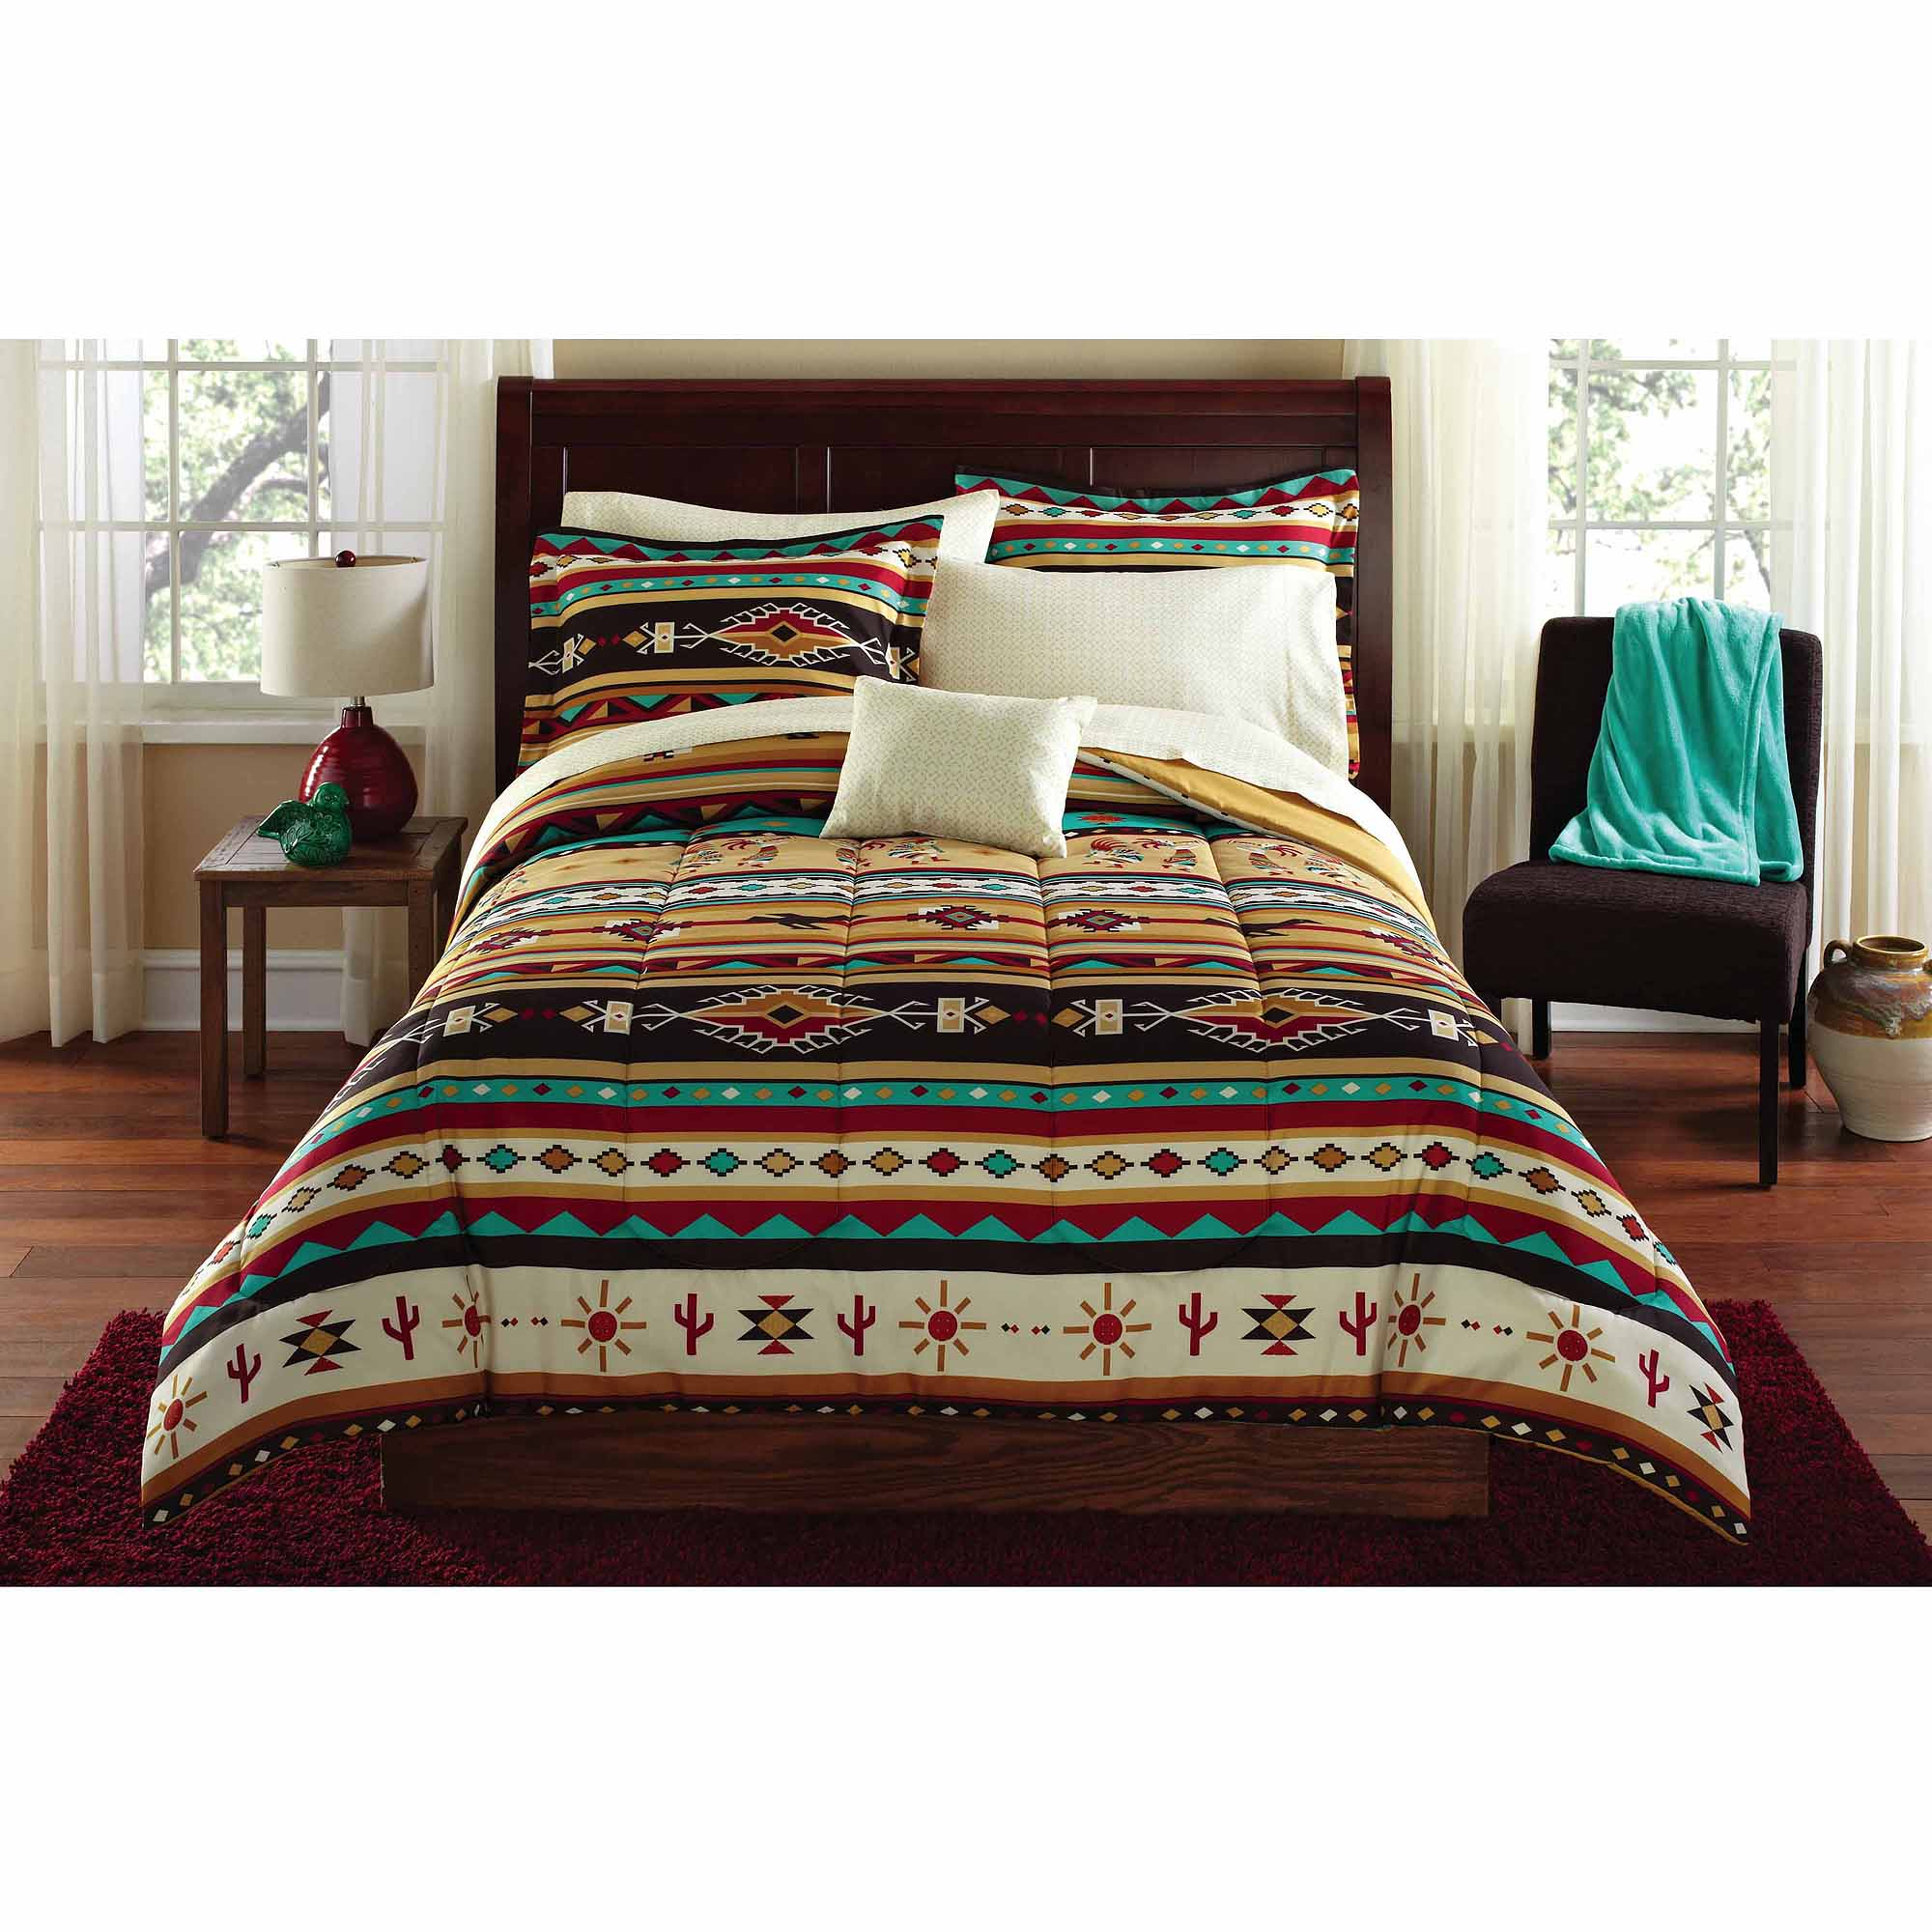 Native American Bedding Sets.Details About Comforter Bedding Set Twin Size Bed In A Bag Native American Southwest 6 Pieces